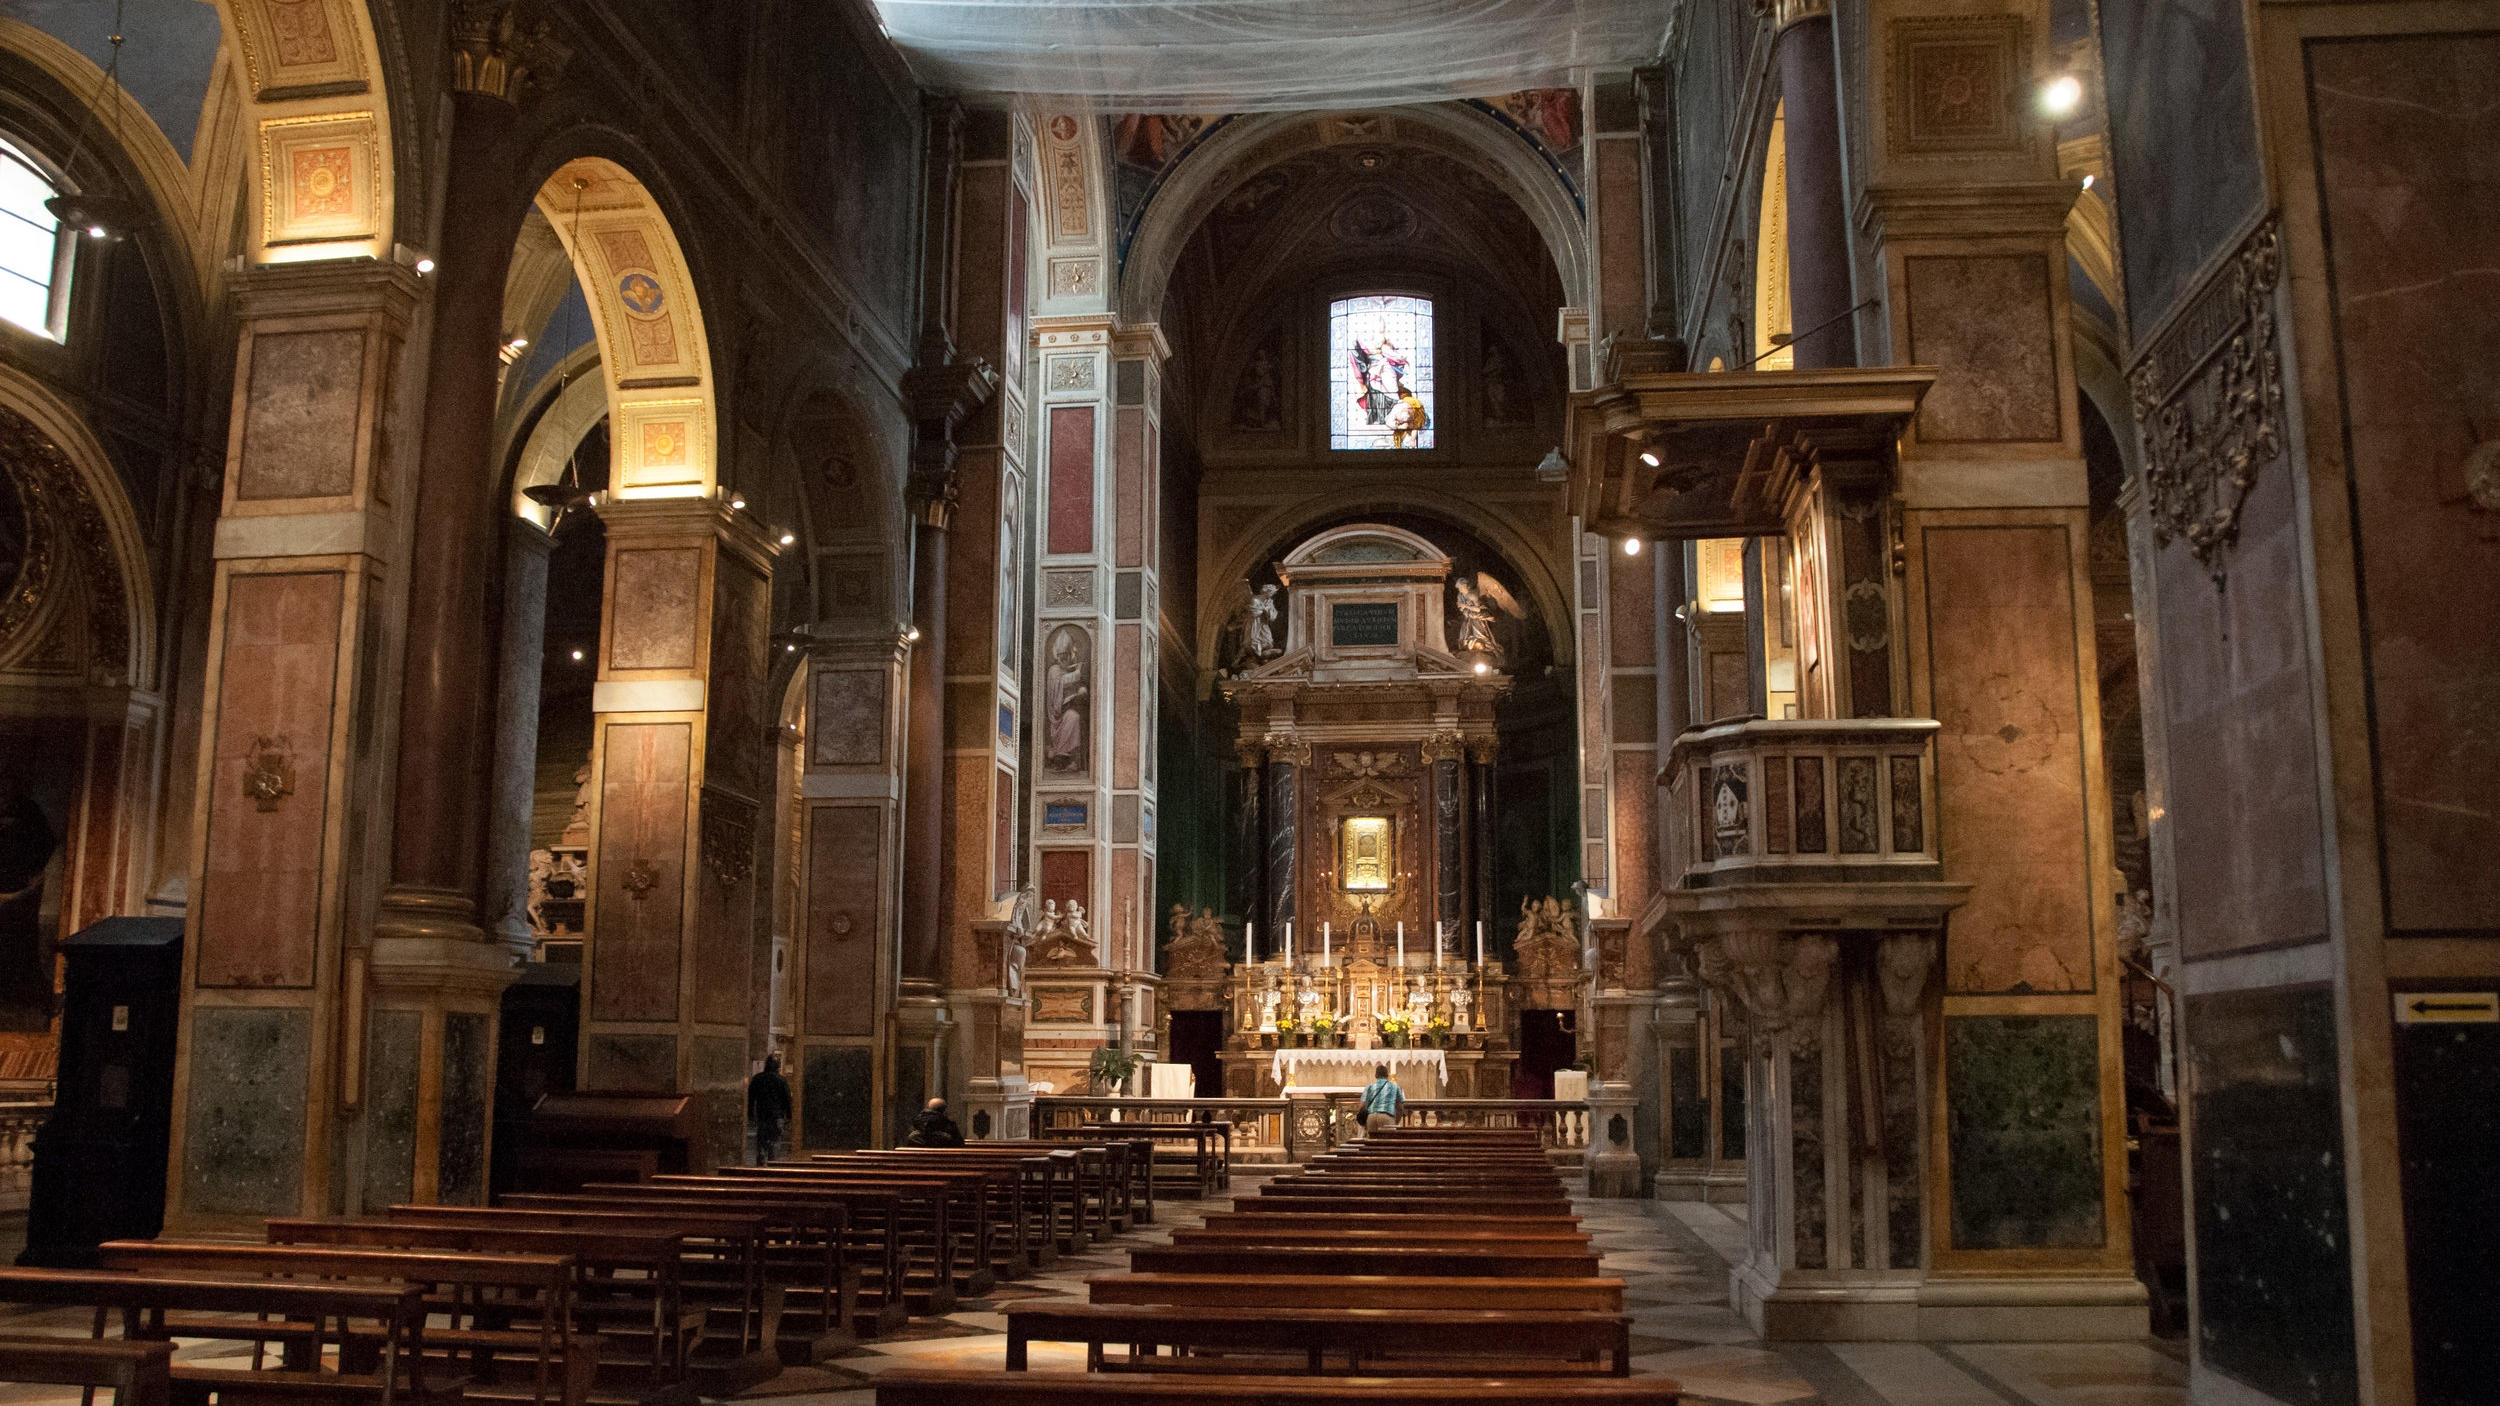 Main Altar at the Basilica of Saint Augustine, Rome. Photo by Kevin Salemme